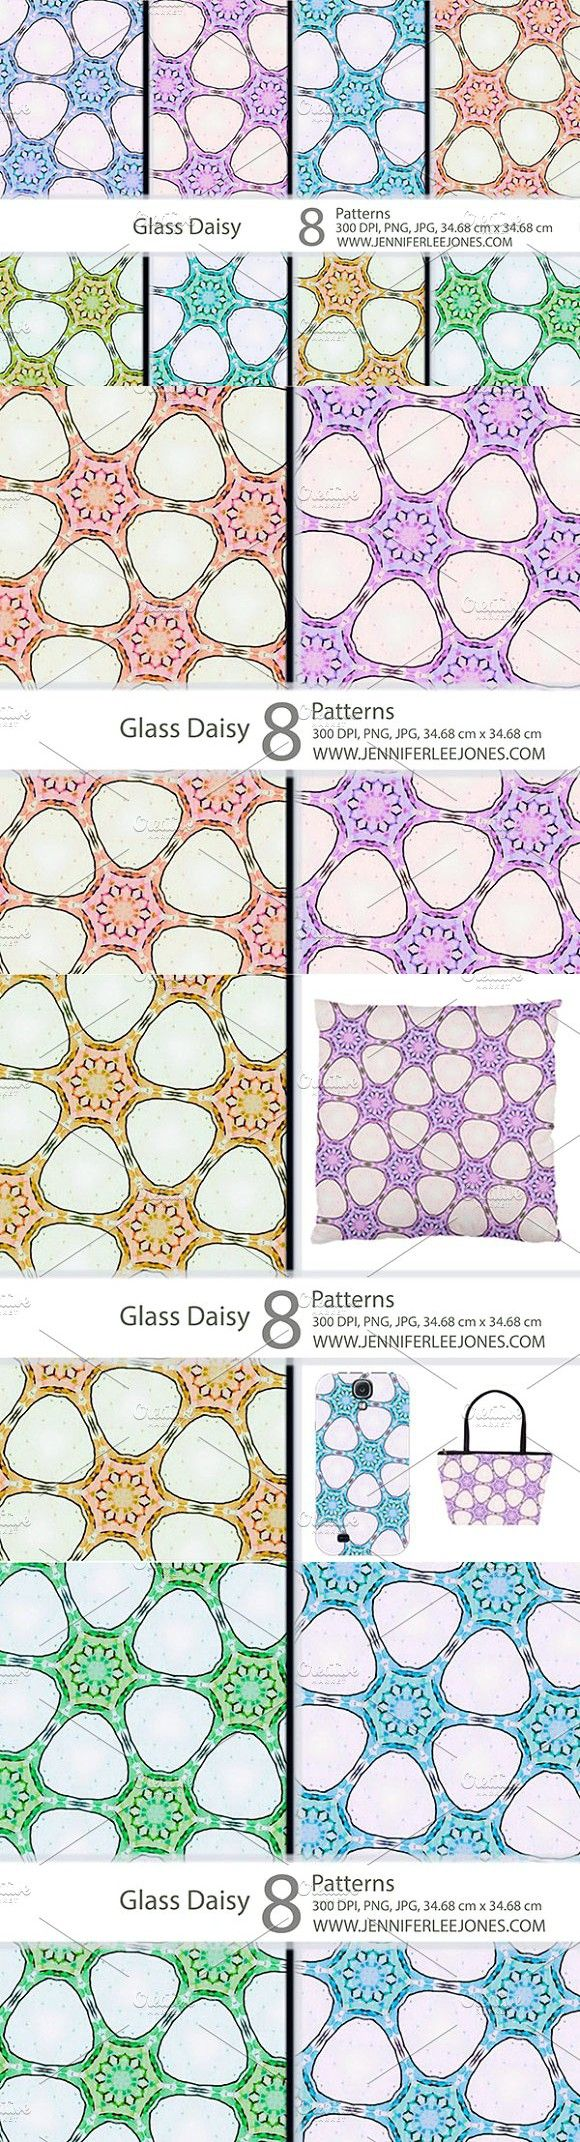 Vintage Daisy Patterns. Patterns